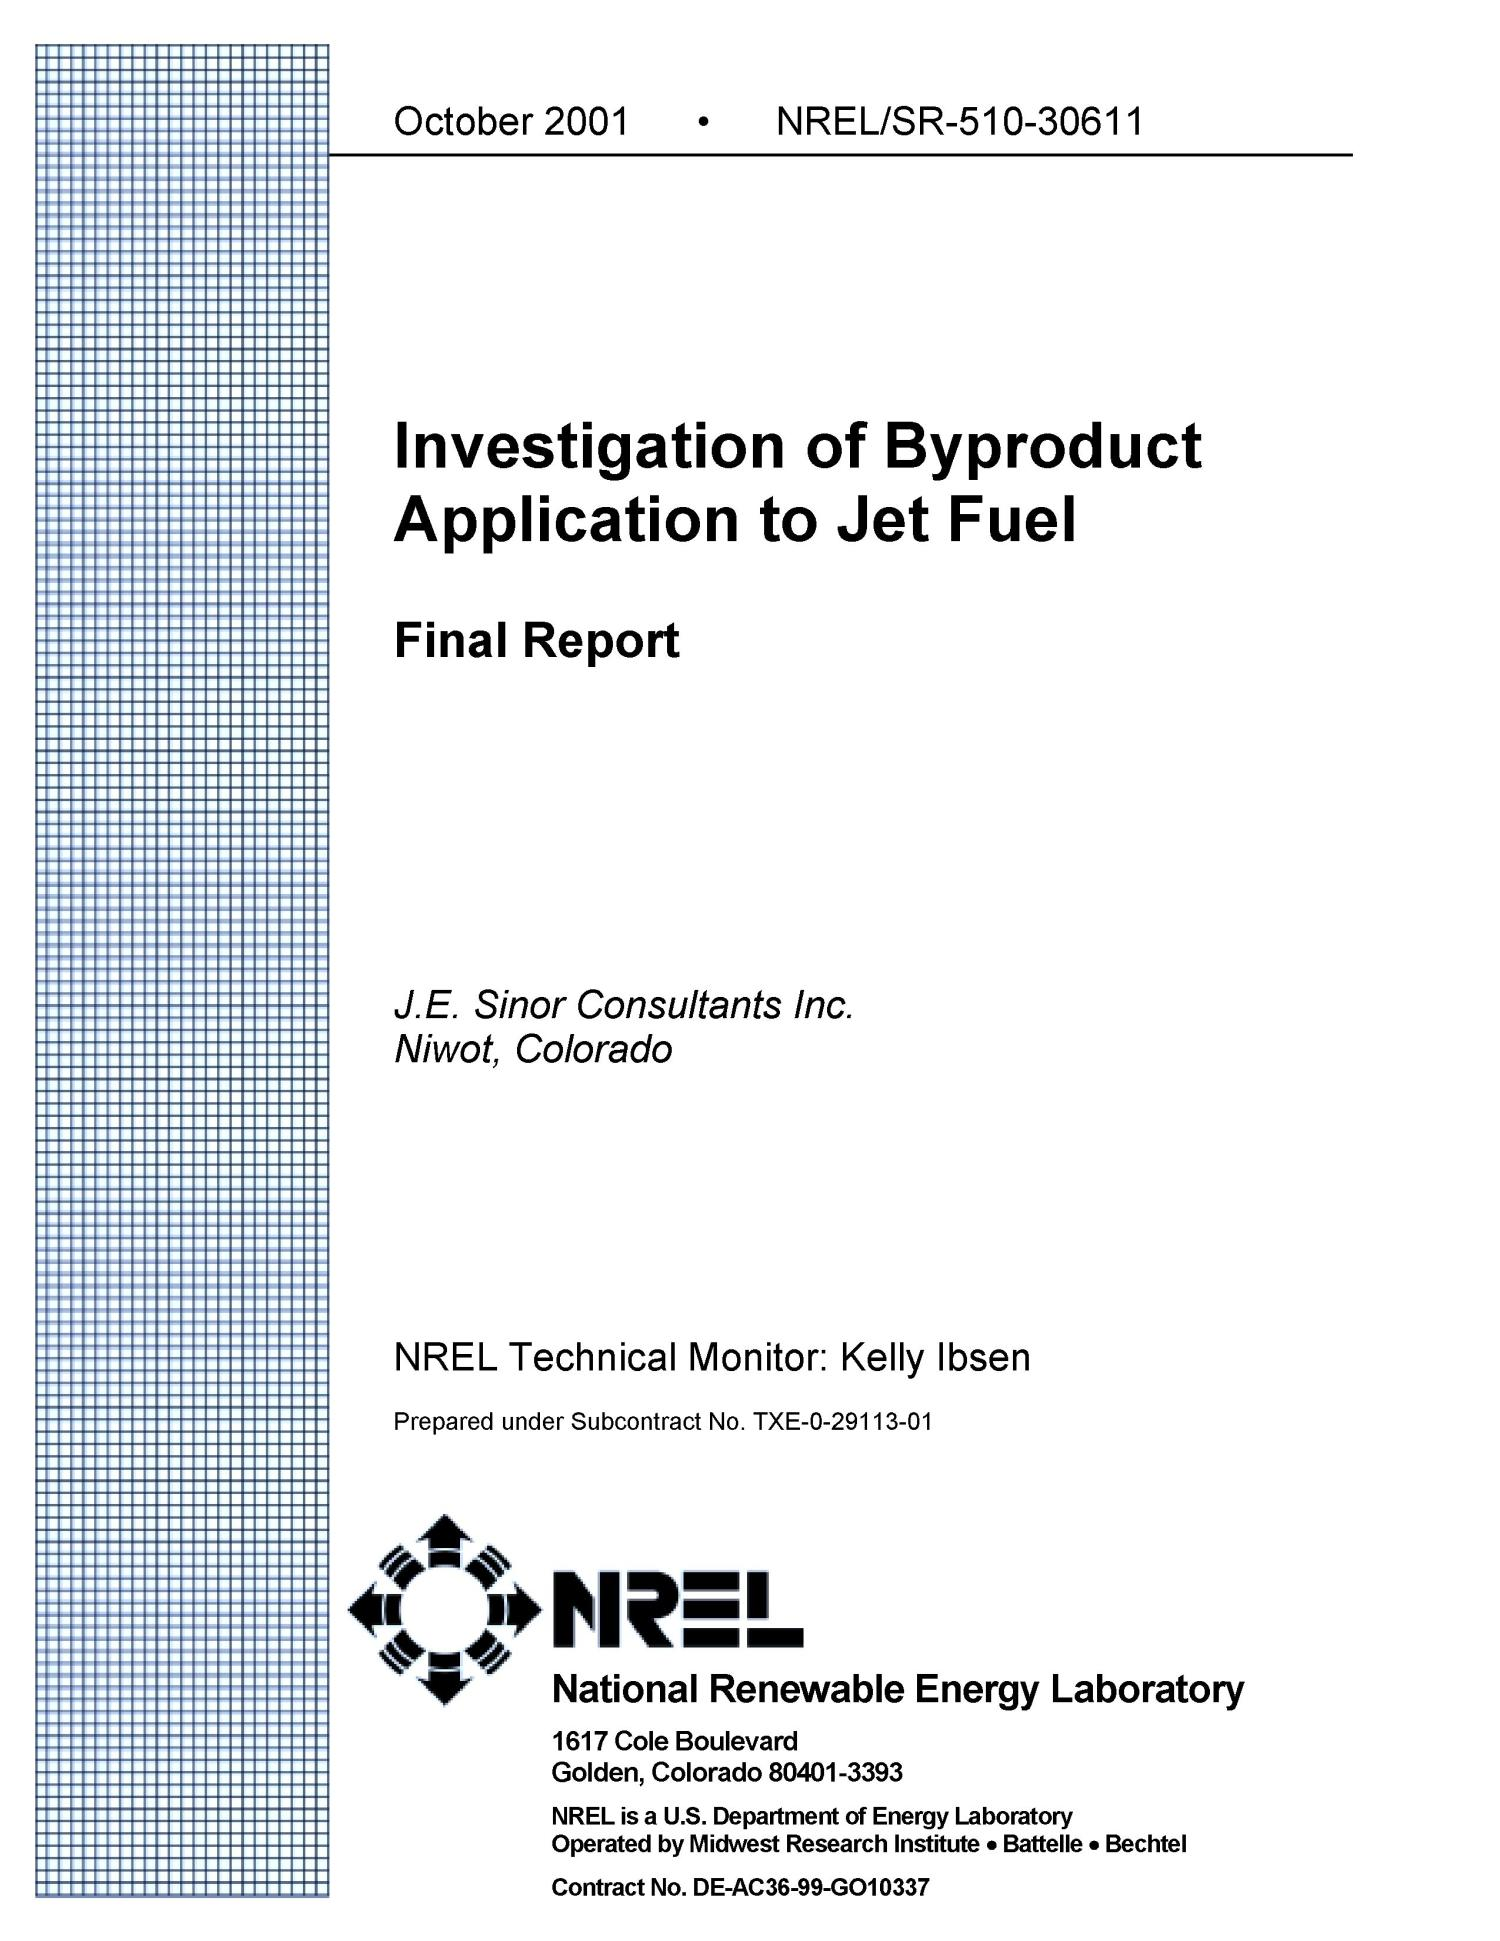 Investigation of Byproduct Application to Jet Fuel                                                                                                      [Sequence #]: 2 of 35